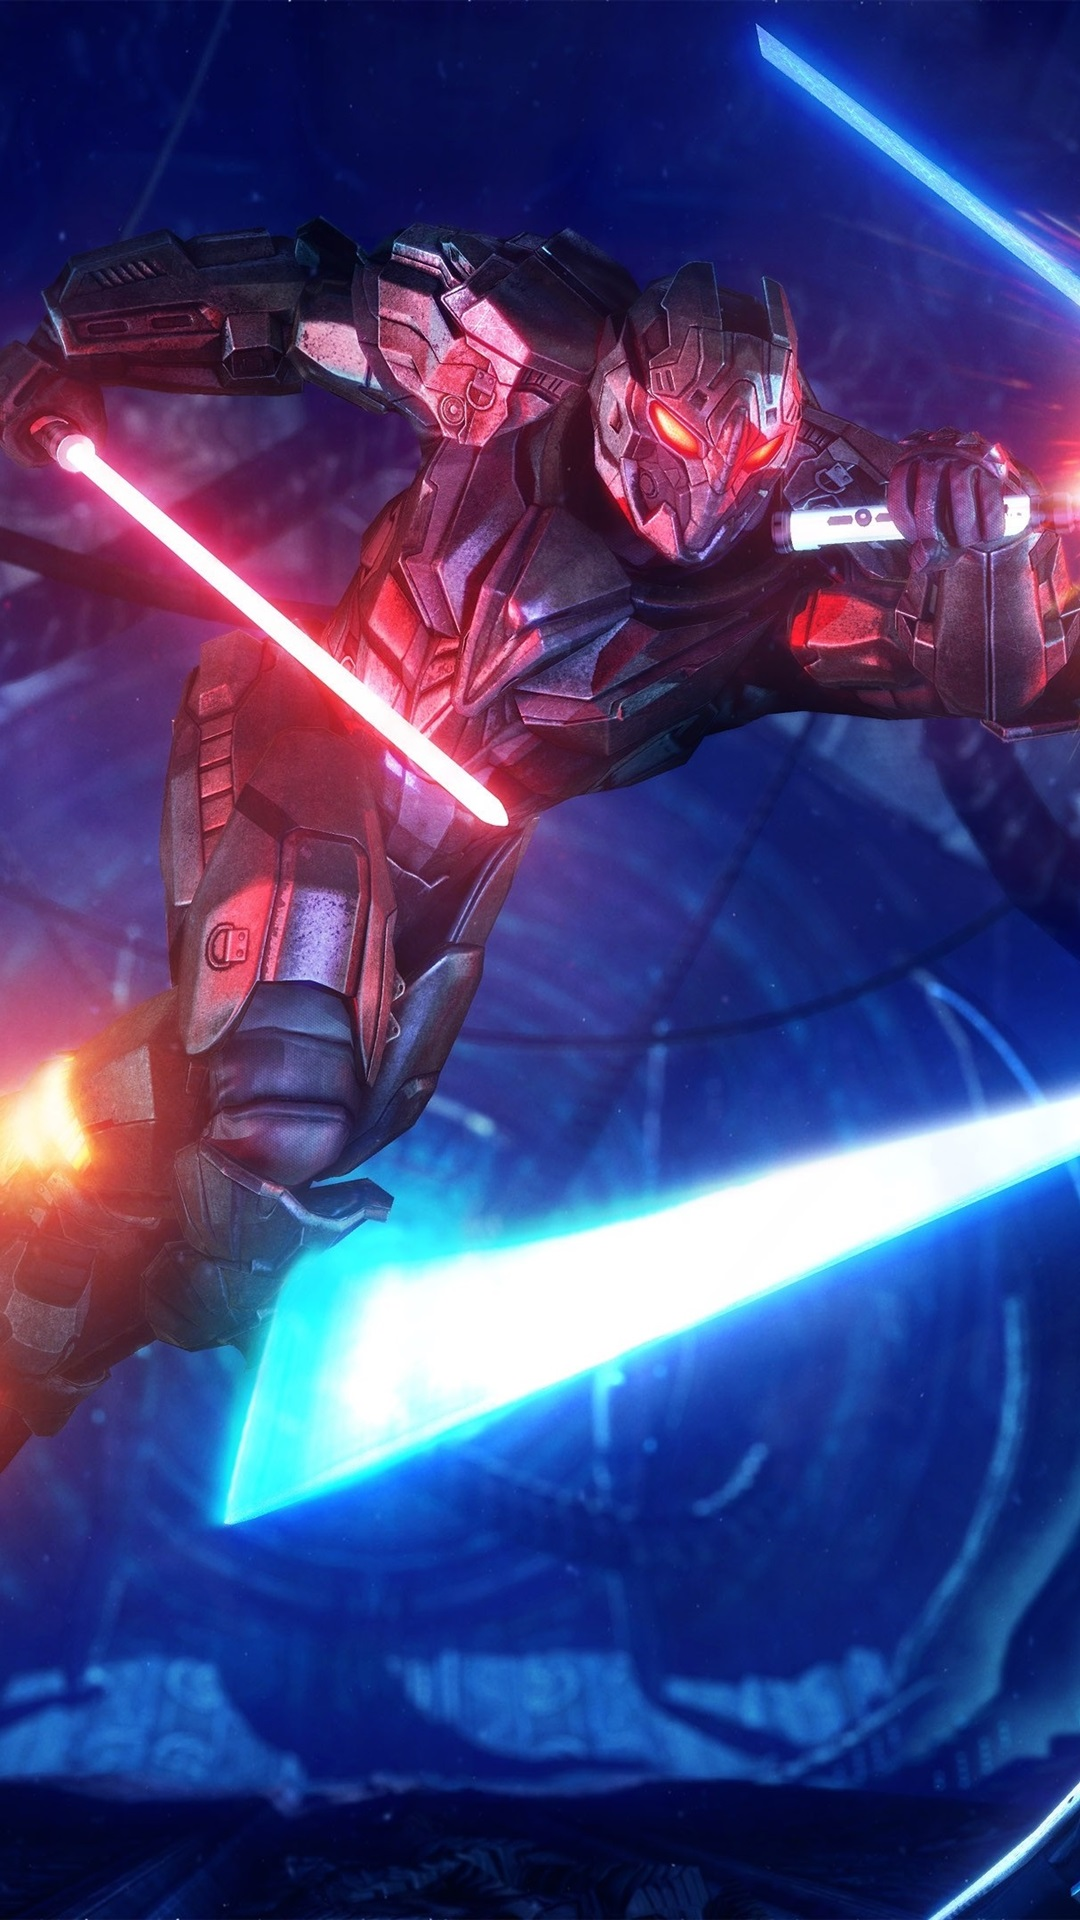 Star Wars Video Games Lightsaber 1080x1920 Iphone 8766s